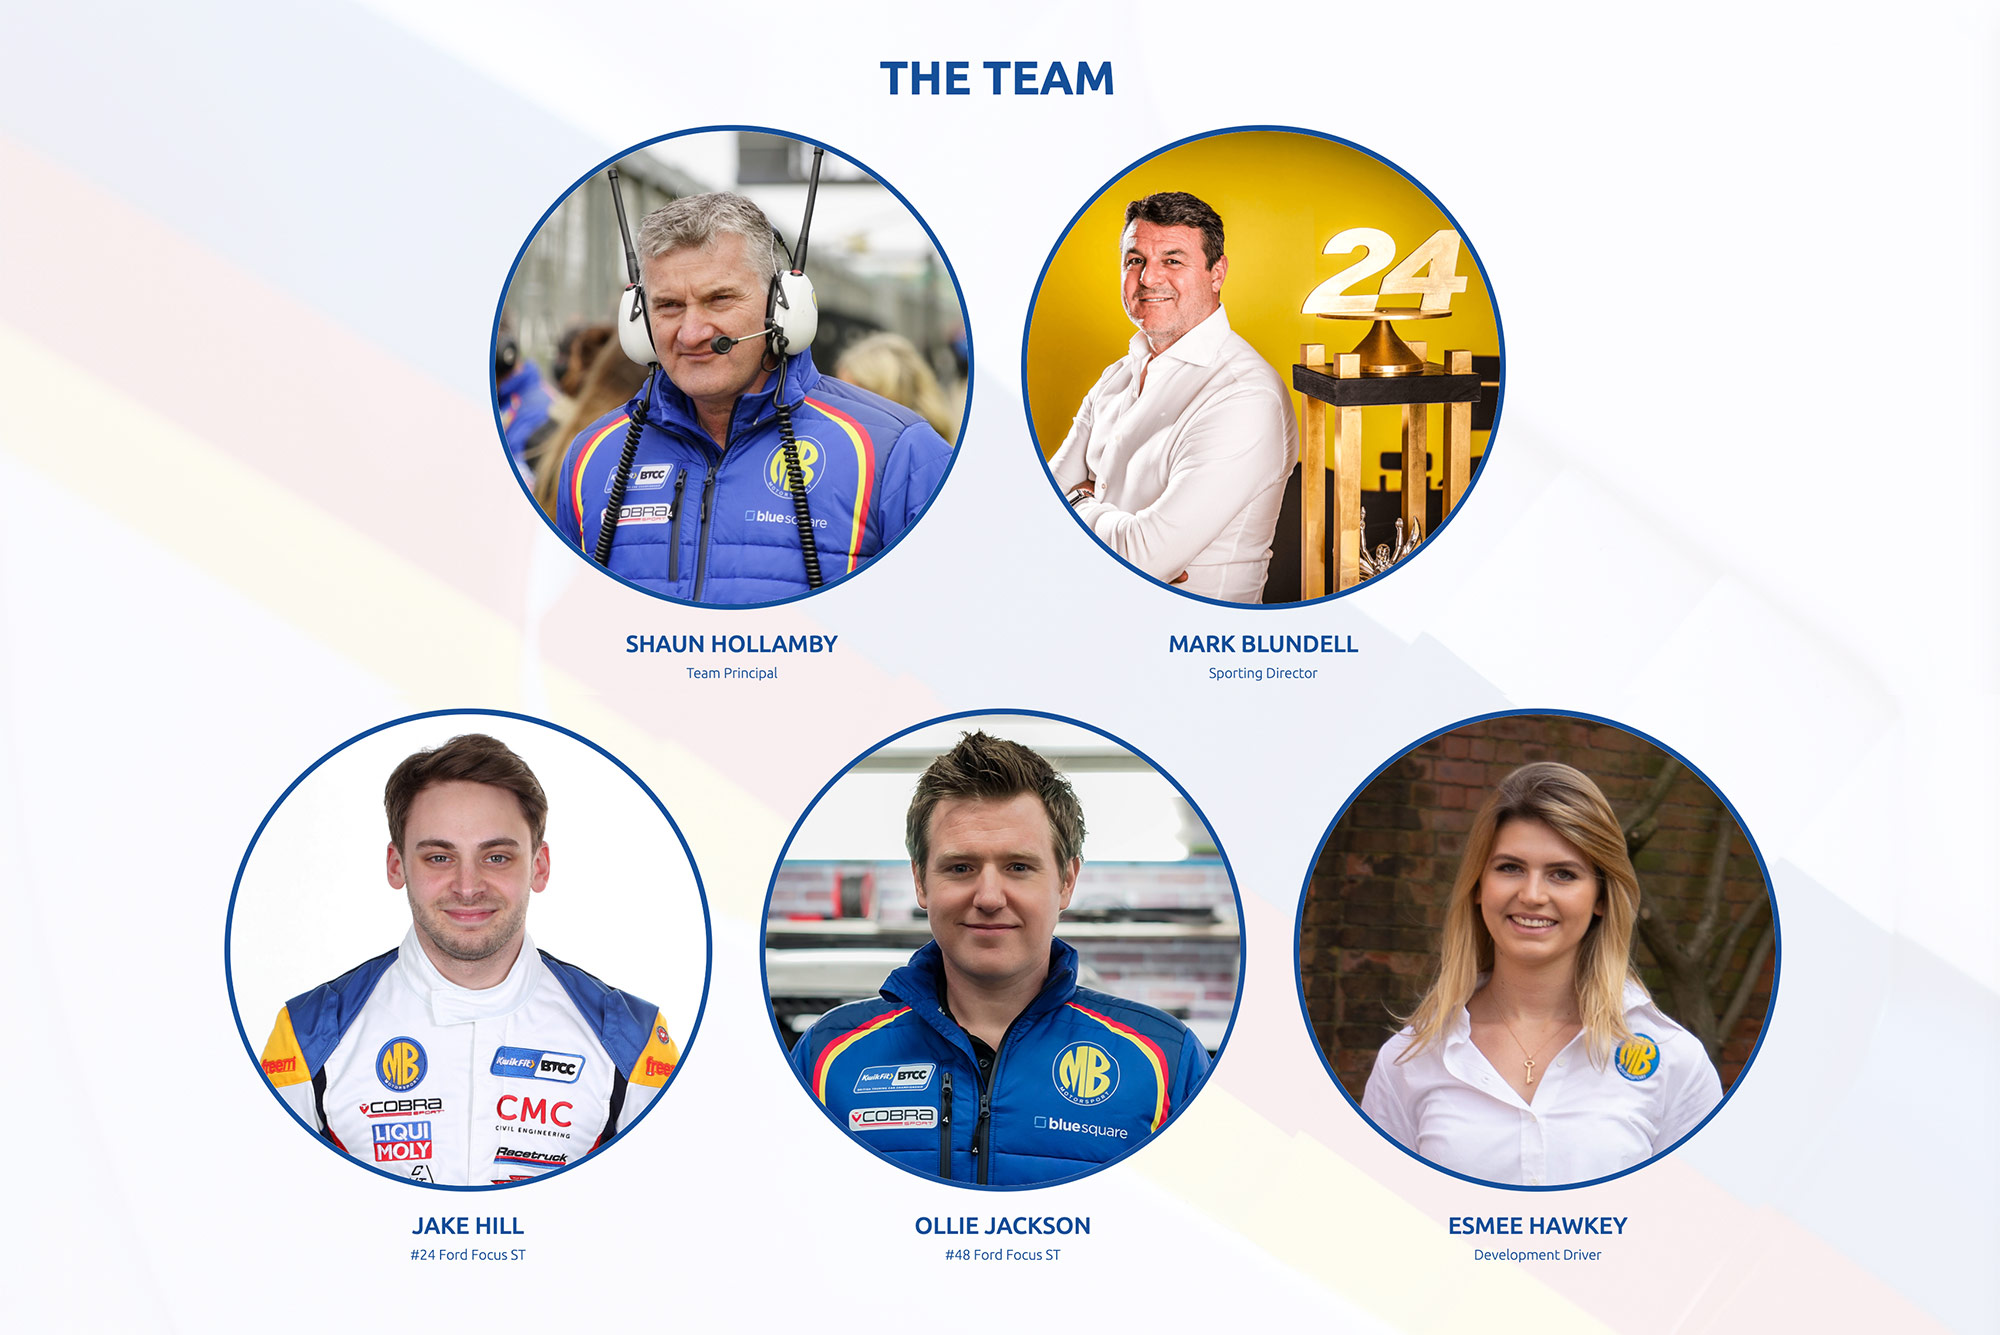 The Team Page